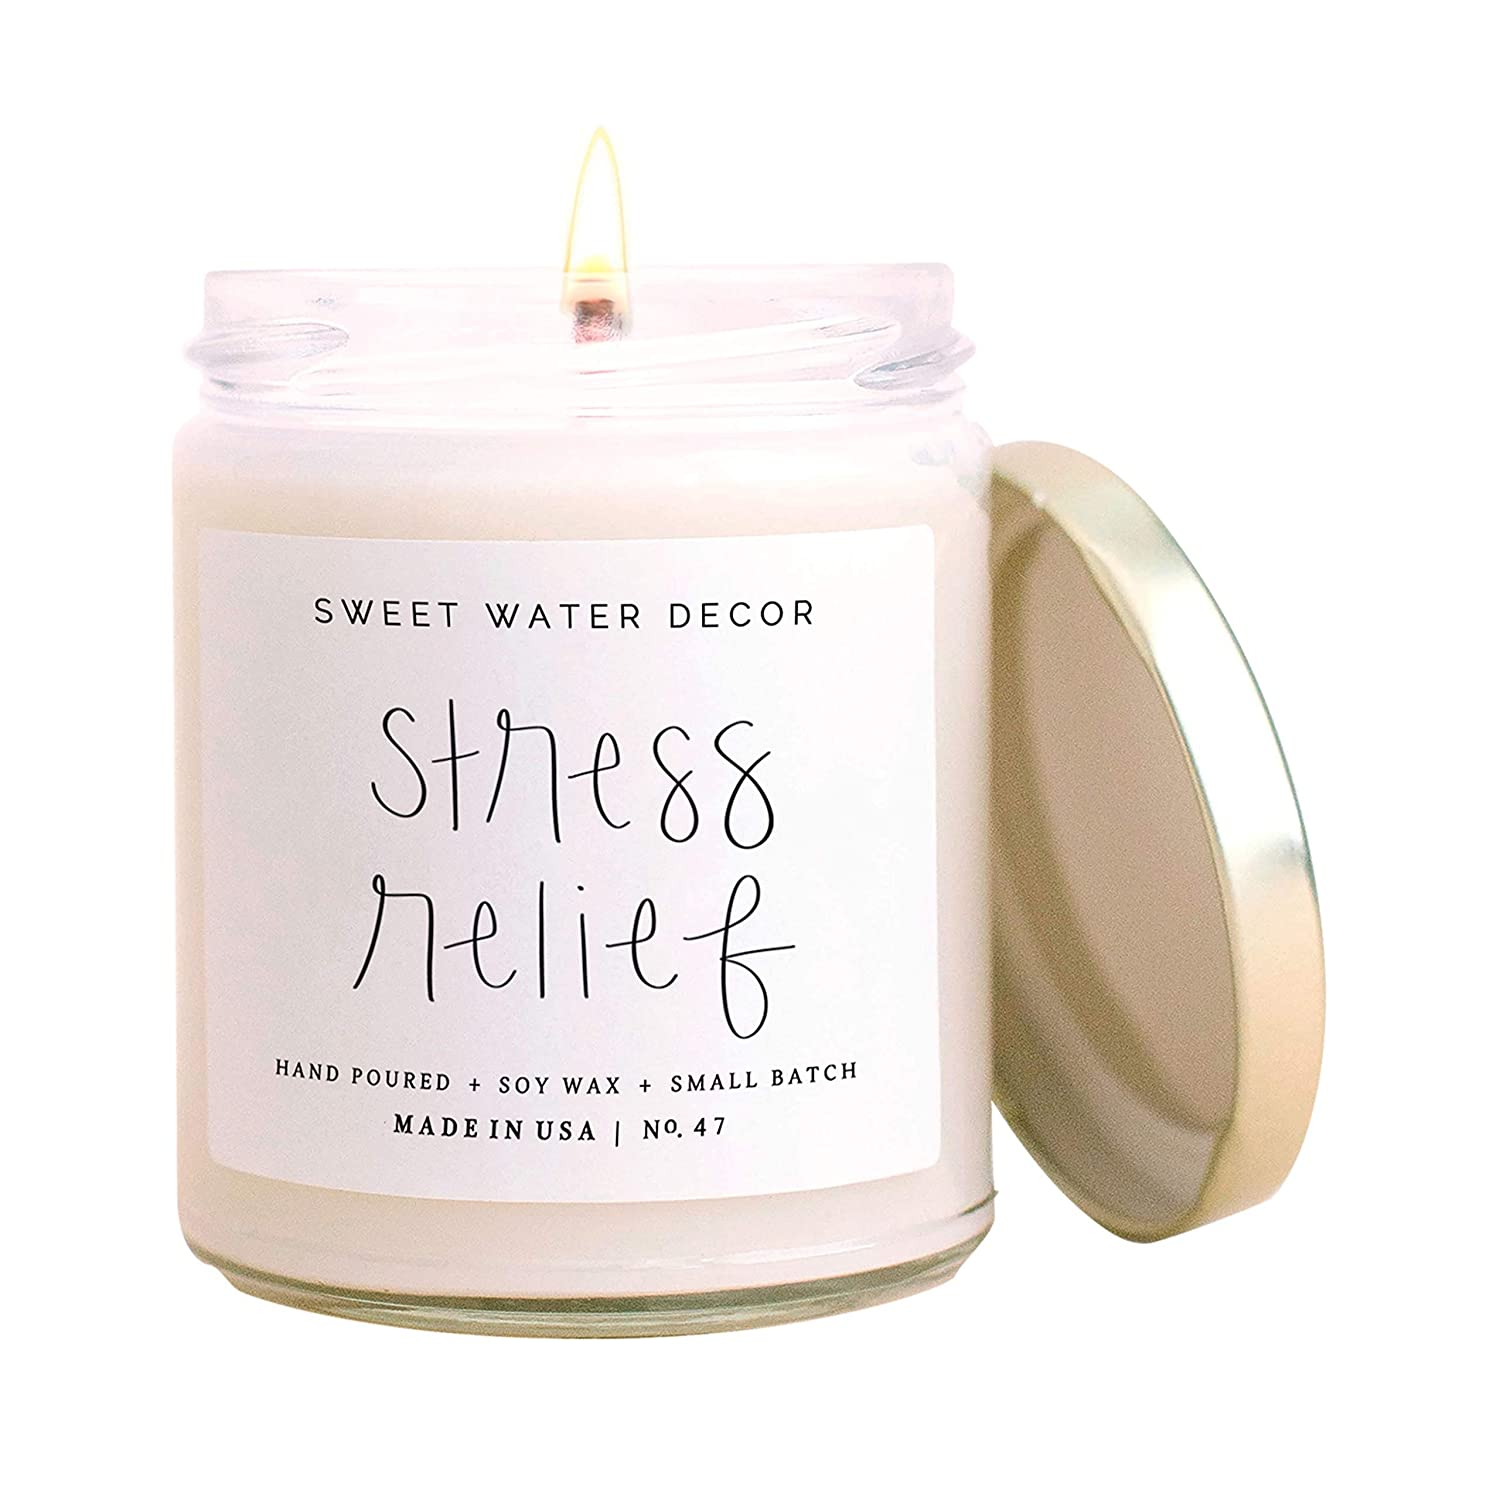 Sweet Water Decor Stress Relief Candle | Eucalyptus, Spearmint, Citrus, Sage, Relaxing Scented Soy Candles for Home | 9oz Clear Glass Jar, 40 Hour Burn Time, Made in the USA